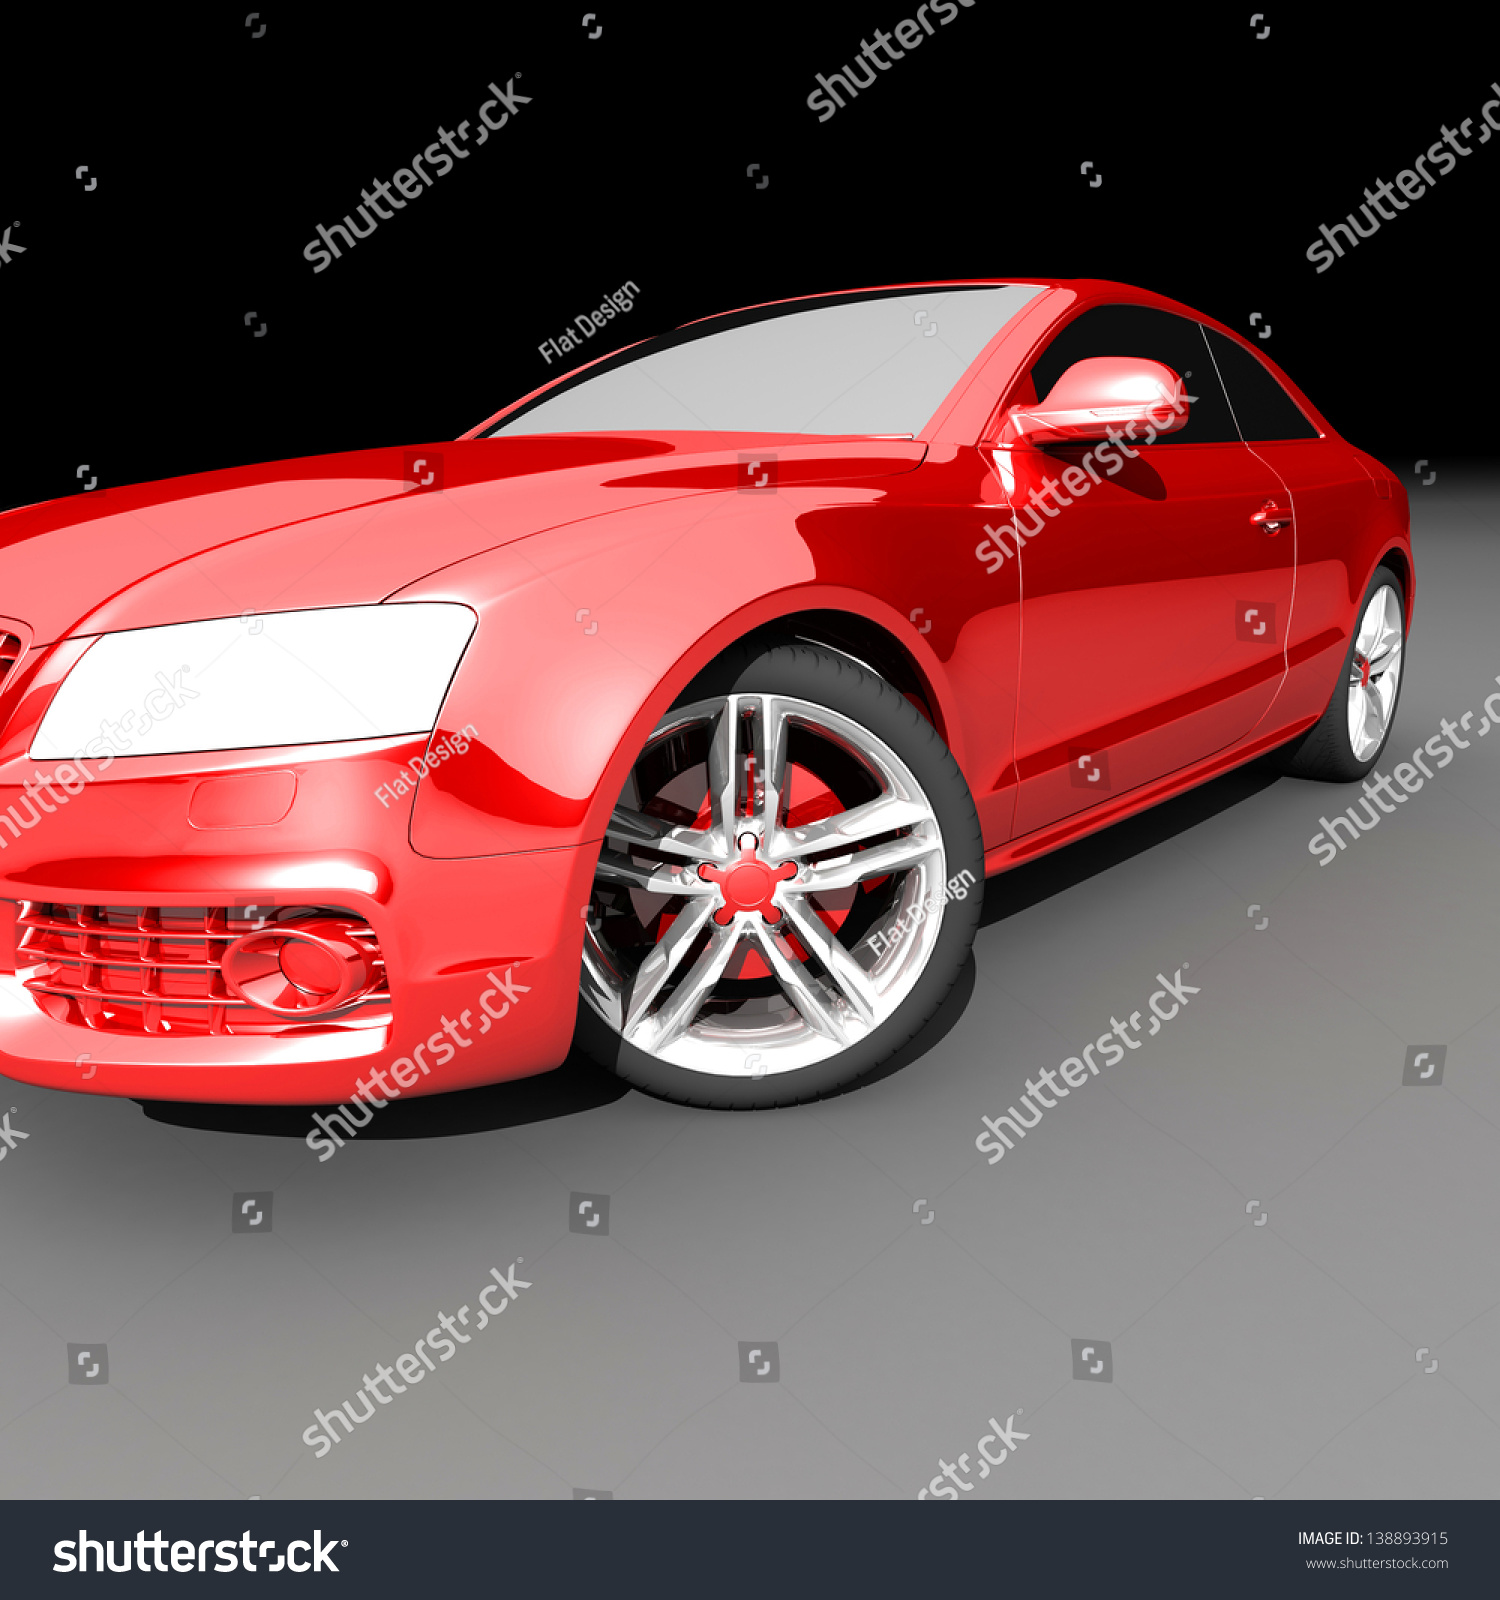 car red color on a dark background. with shiny paint and lights on